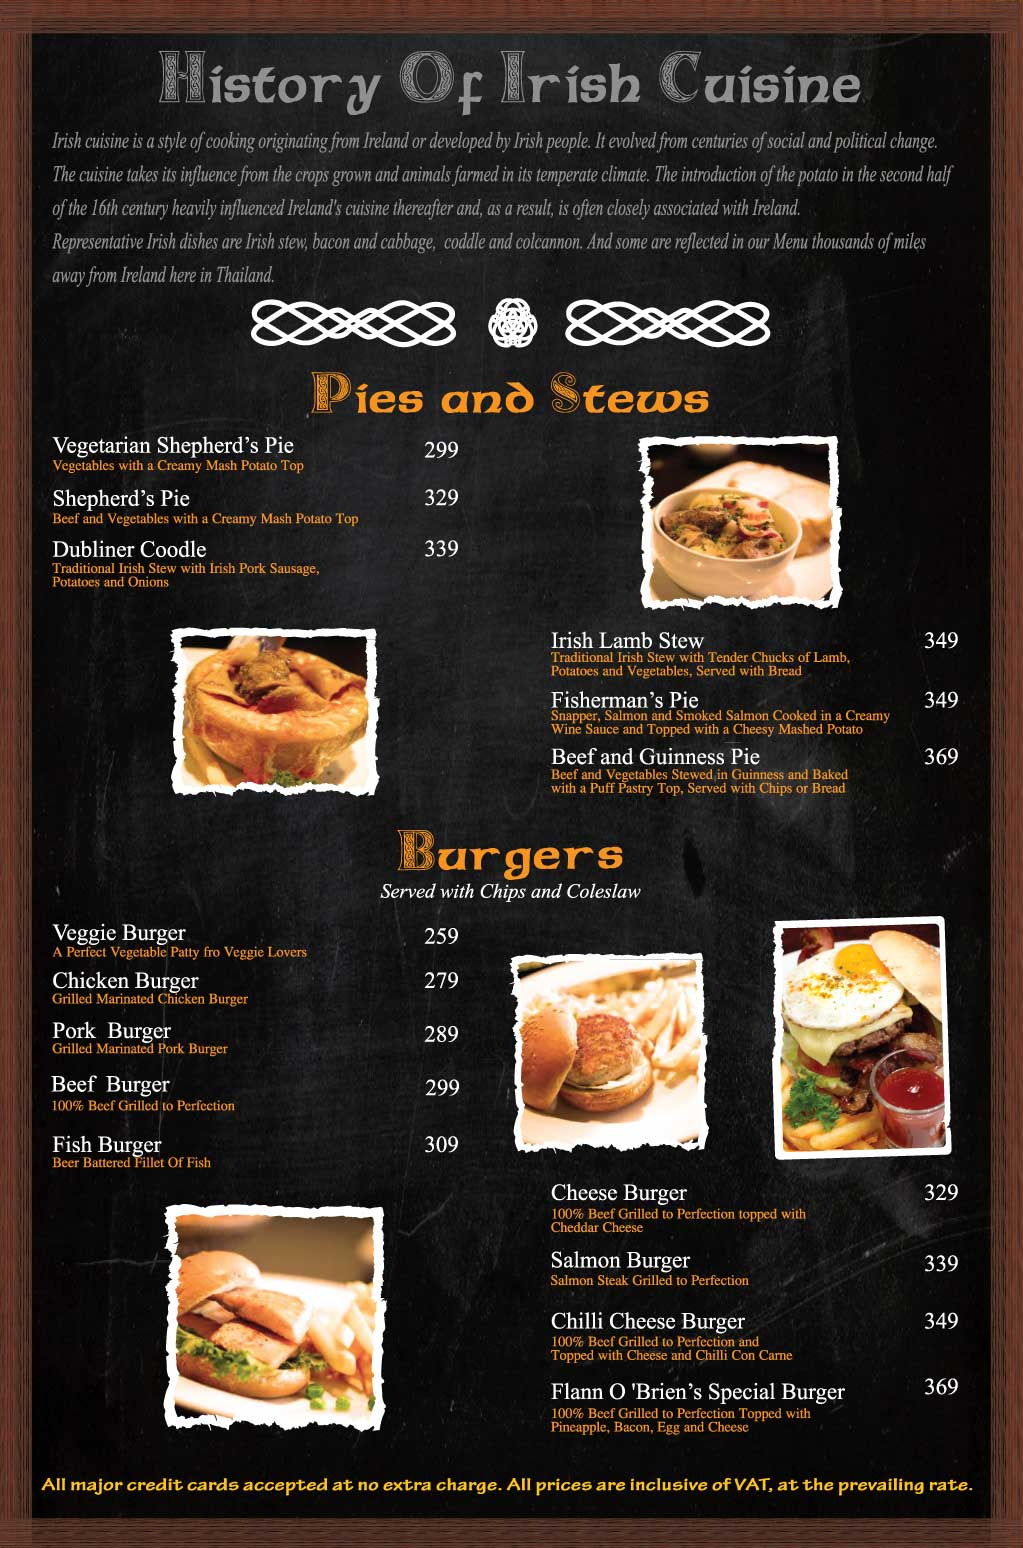 Flann Asiatique Food Menu Pies Stews Burgers